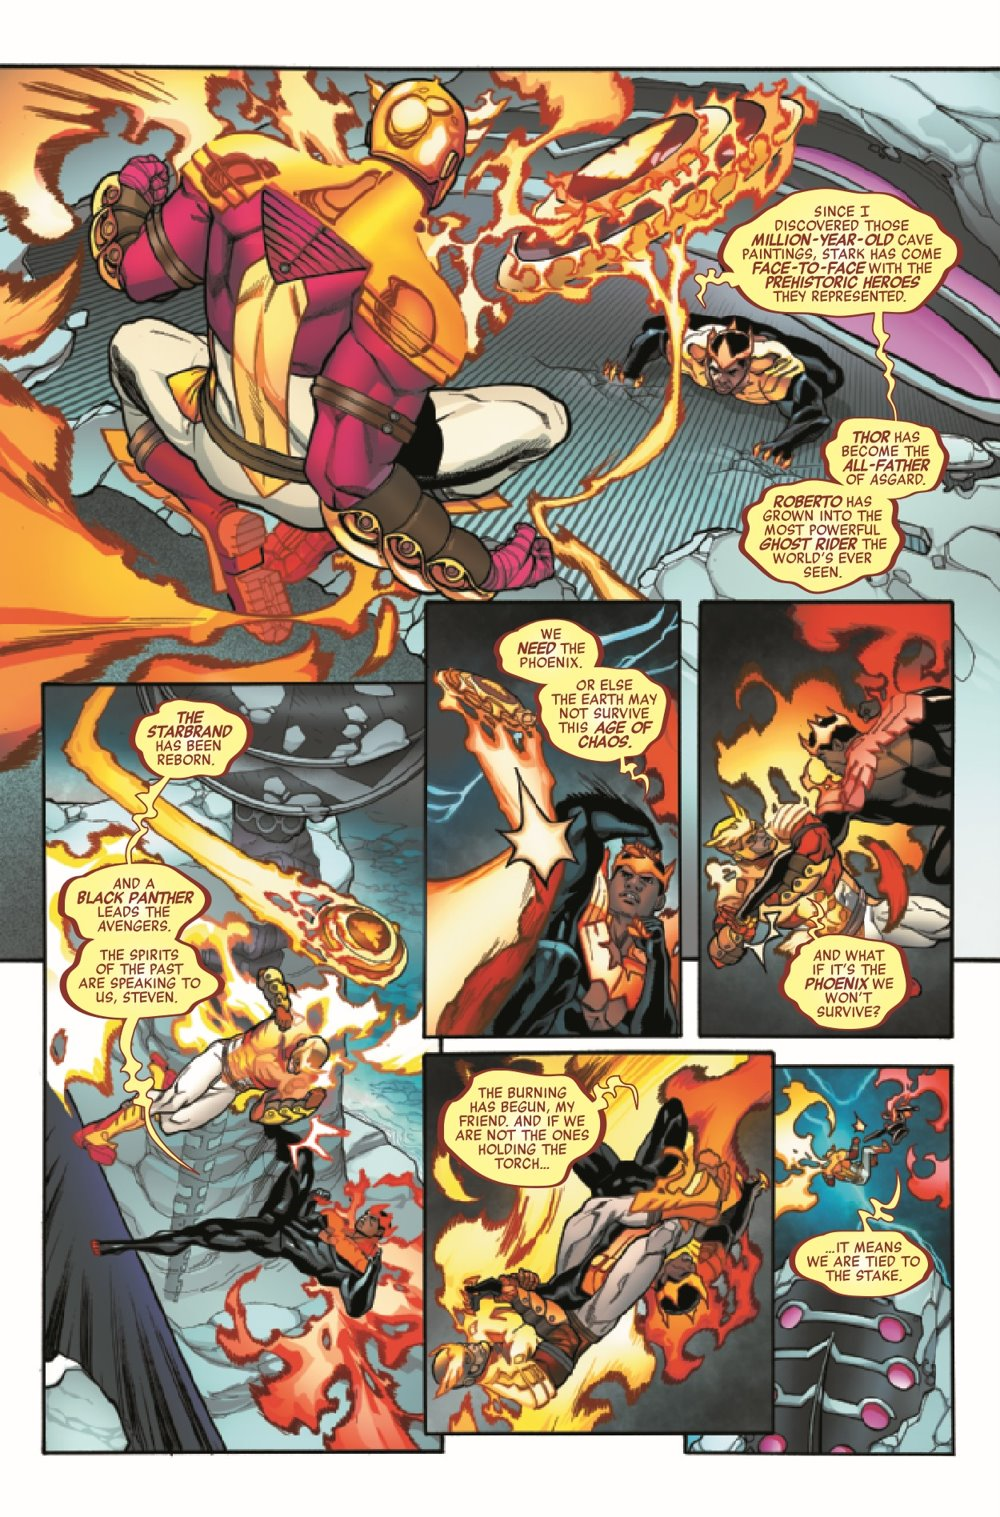 AVEN2018044_Preview-5 ComicList Previews: THE AVENGERS #44